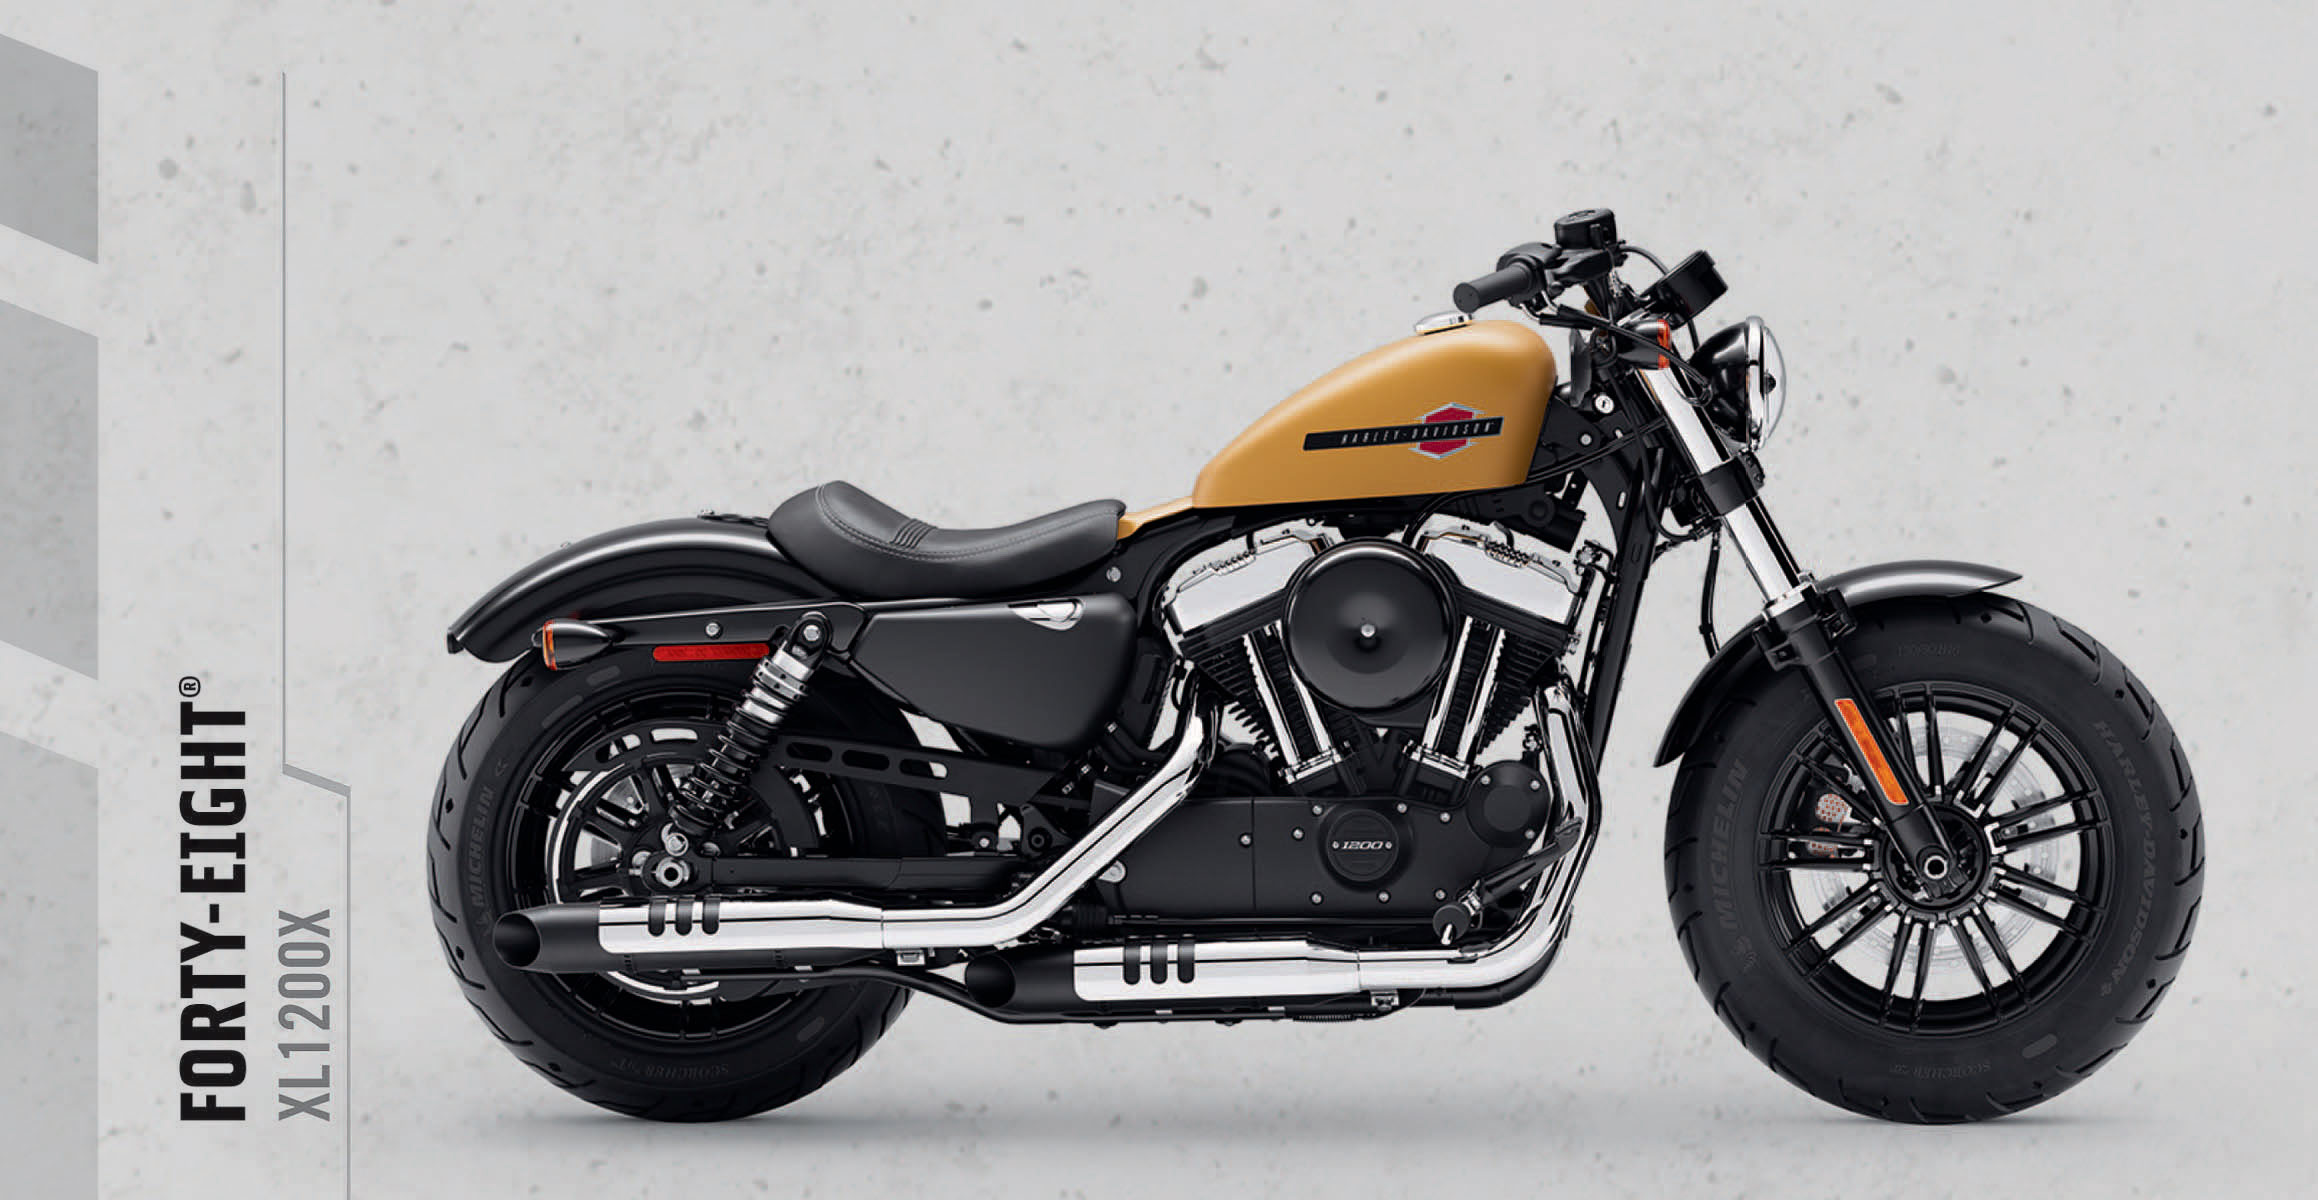 Forty-Eight®   Heavy-hitting style with fat tires and an iconic peanut tank. Designed with its signature bulldog stance and 1200cc of corner cranking torque.